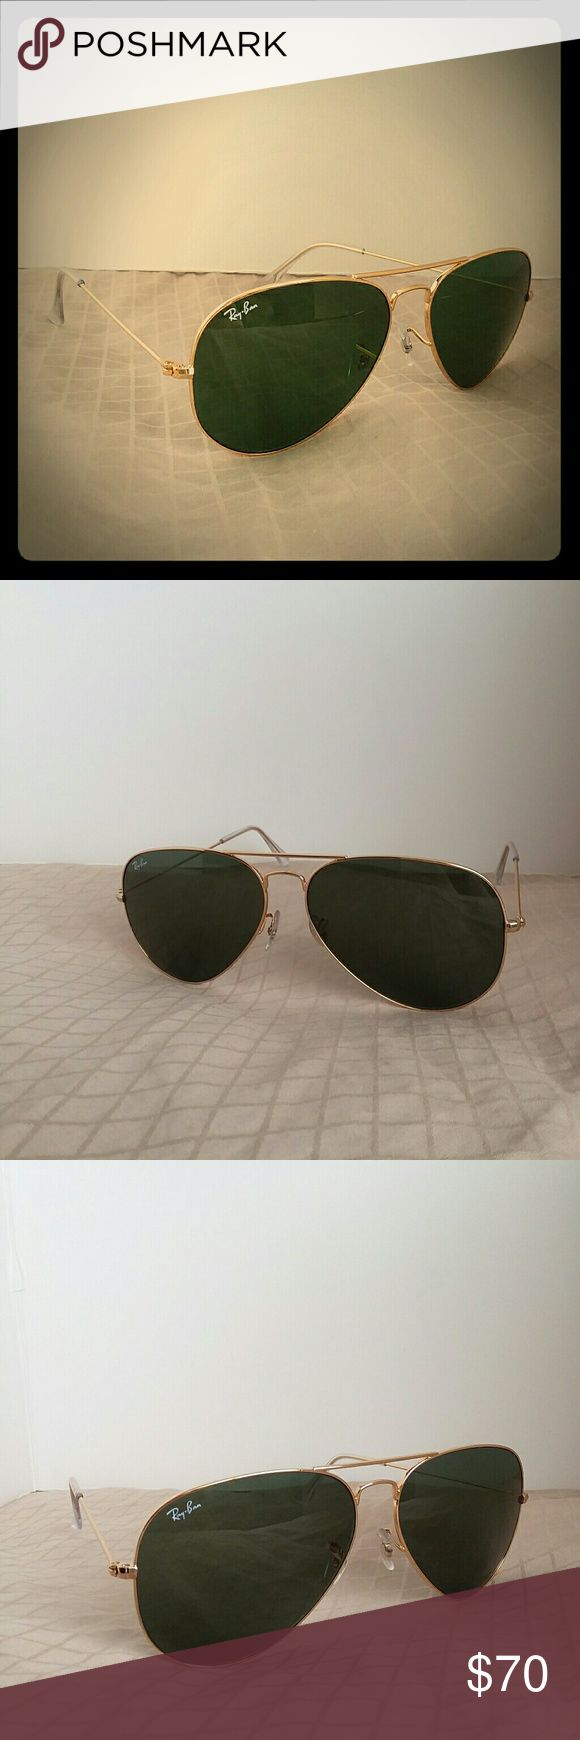 Great condition Classic Ray-Ban aviator large Great worn condition,  no damage or scratches on lenses, brown case,  cloth and icons booklets never used will be included. No box. Made in Italy. Authentic. RB3026 L2846 62-14 3N. 100% UV Protection. Gold frame with classic G-15 lenses. Size XL 62mm.  Great sunglasses, iconic style, timeless classic! Ray-Ban Accessories Glasses